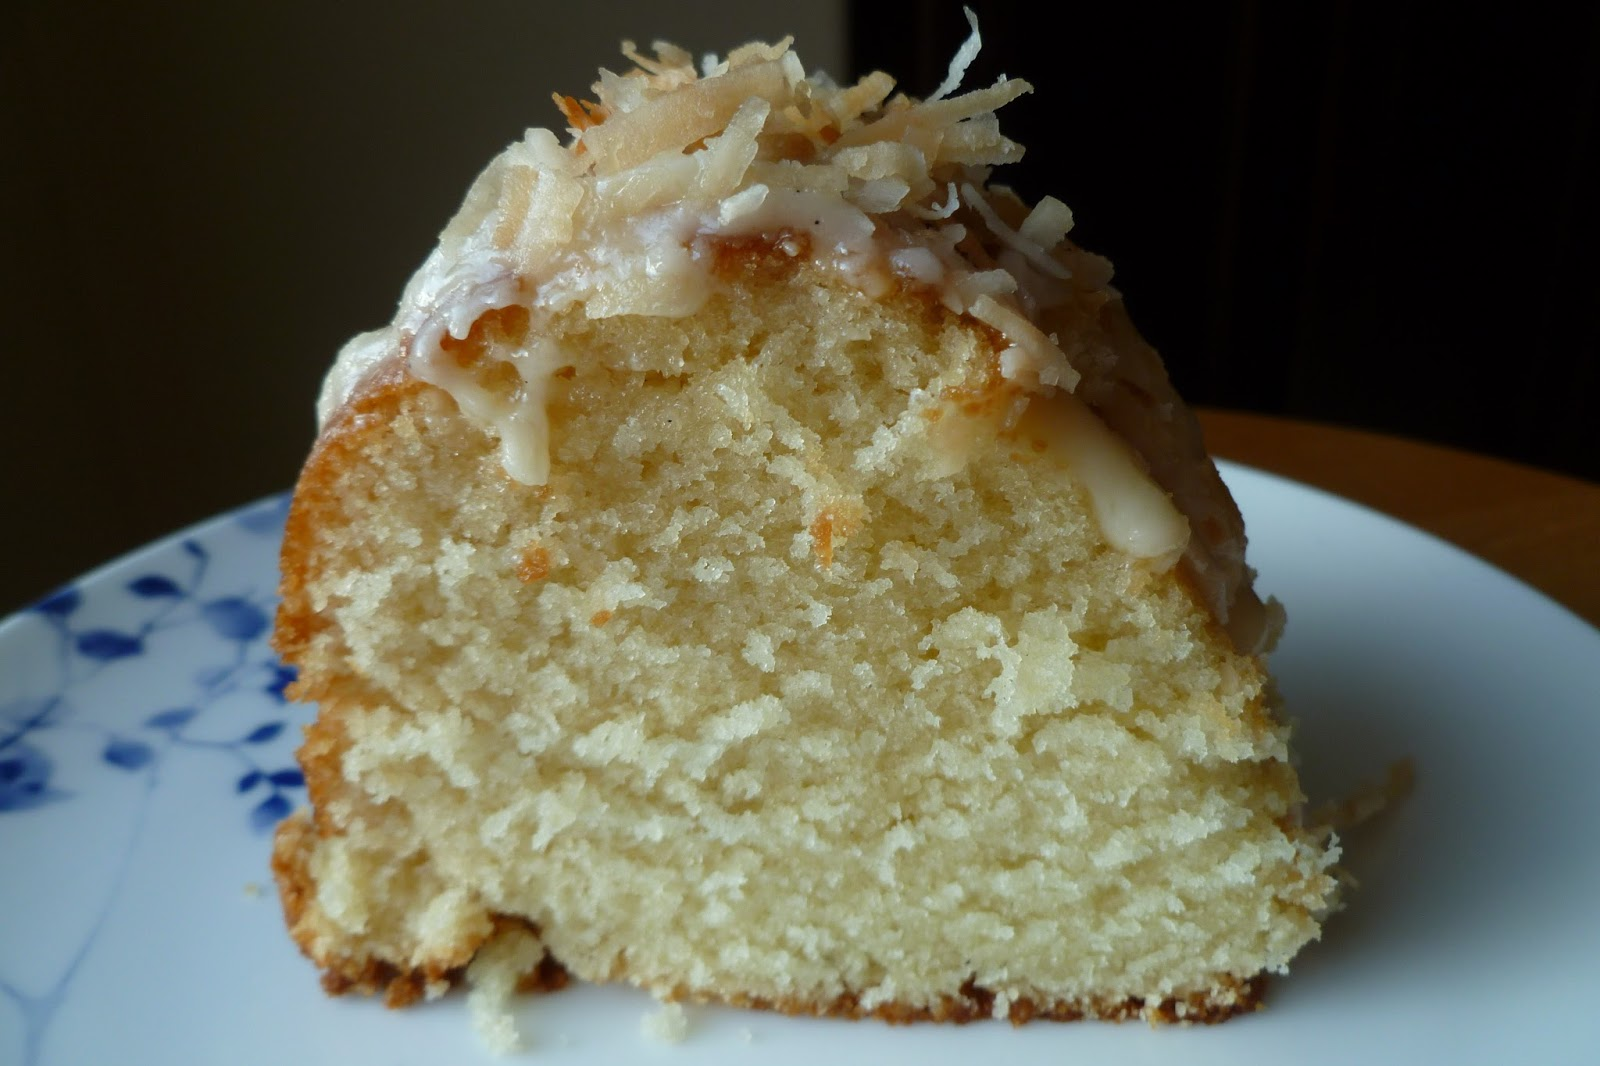 The Pastry Chef's Baking: Louisiana Crunch Cake